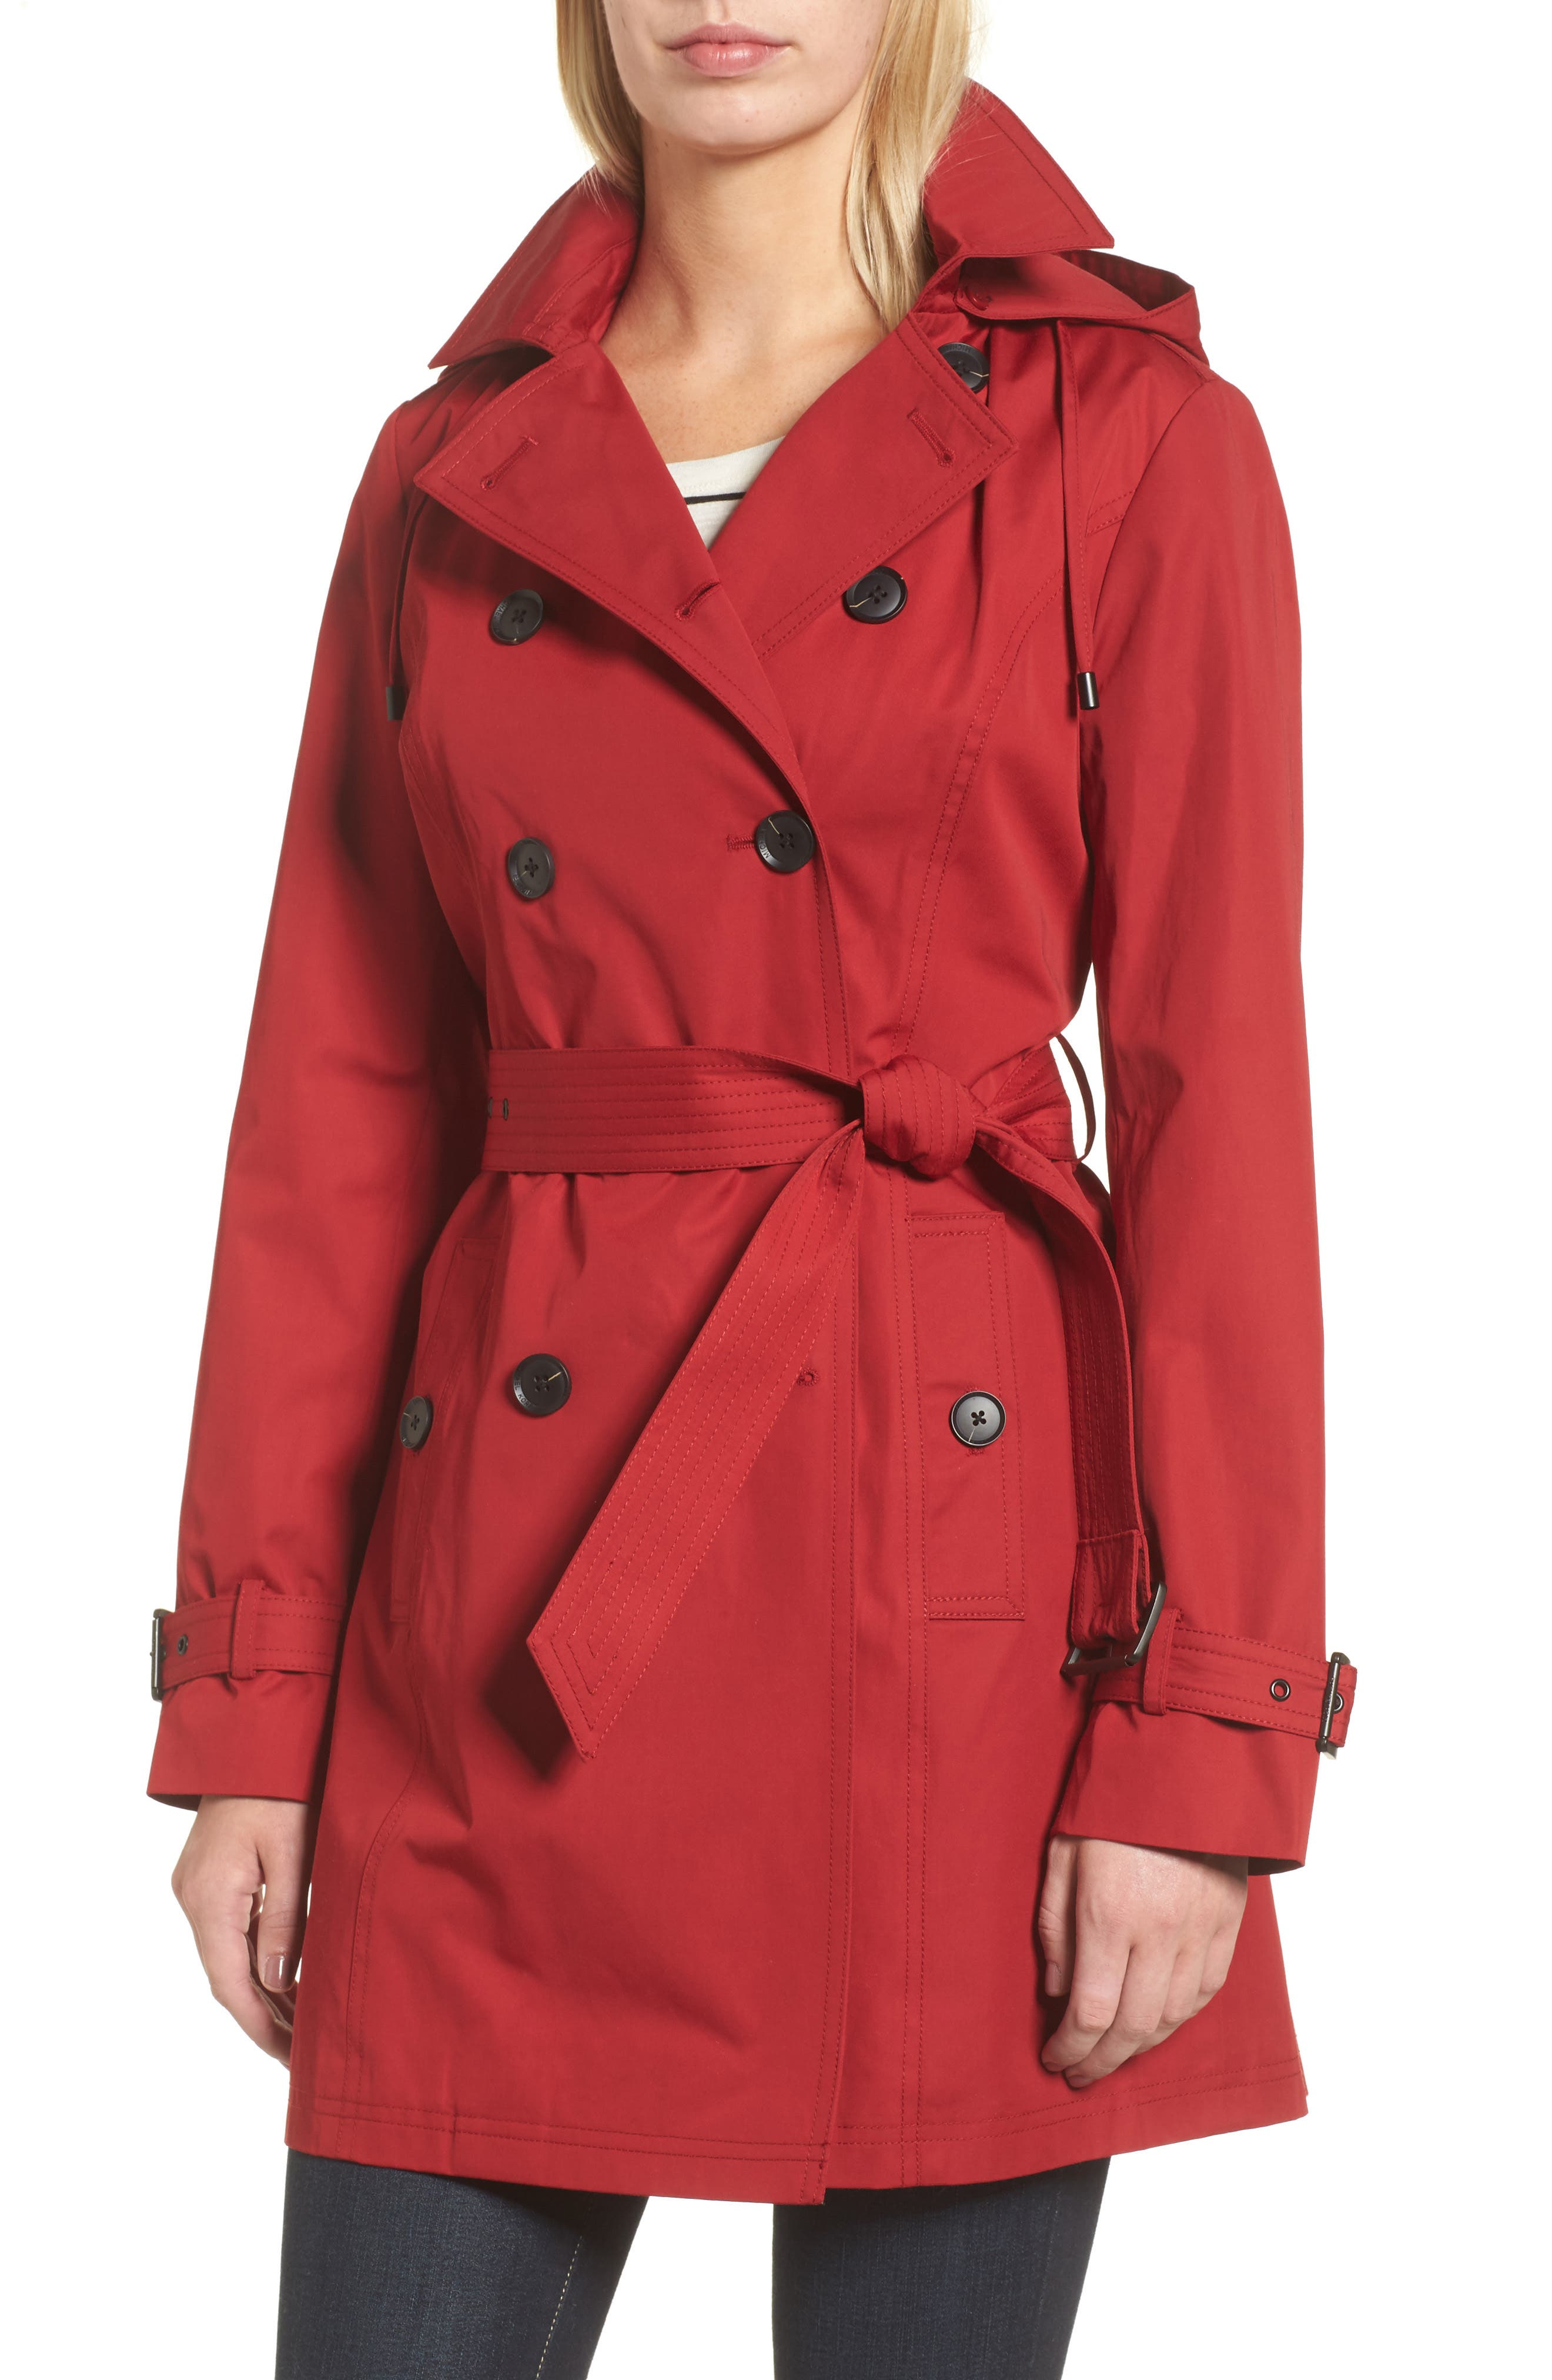 MICHAEL Michael Kors Belted Parka Jacket (Regular & Petite)